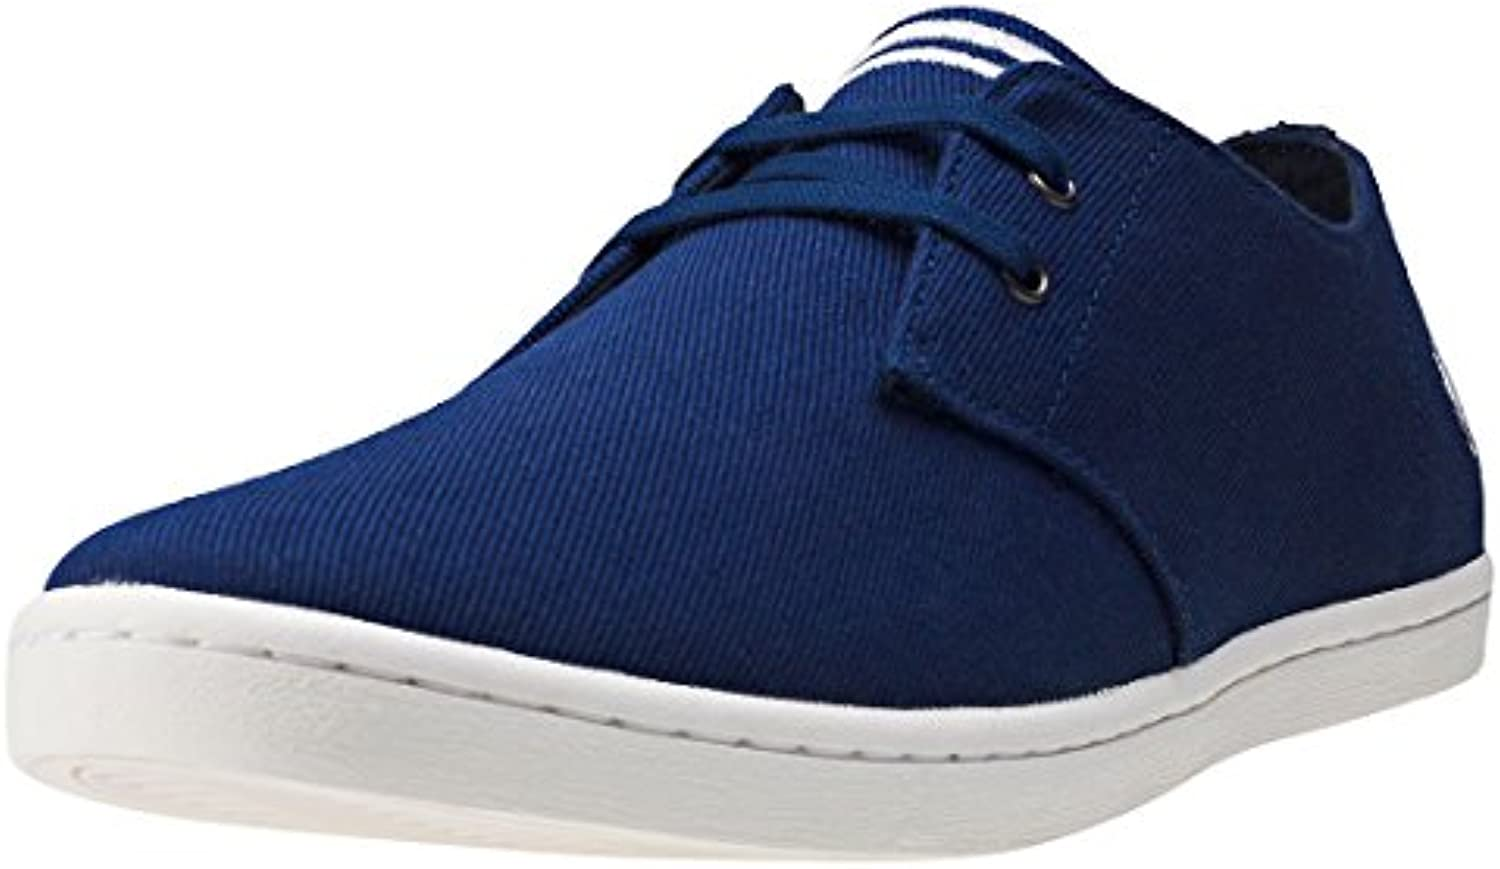 Fred Perry Byron Low Twill French Navy Silver B8233143, Deportivas